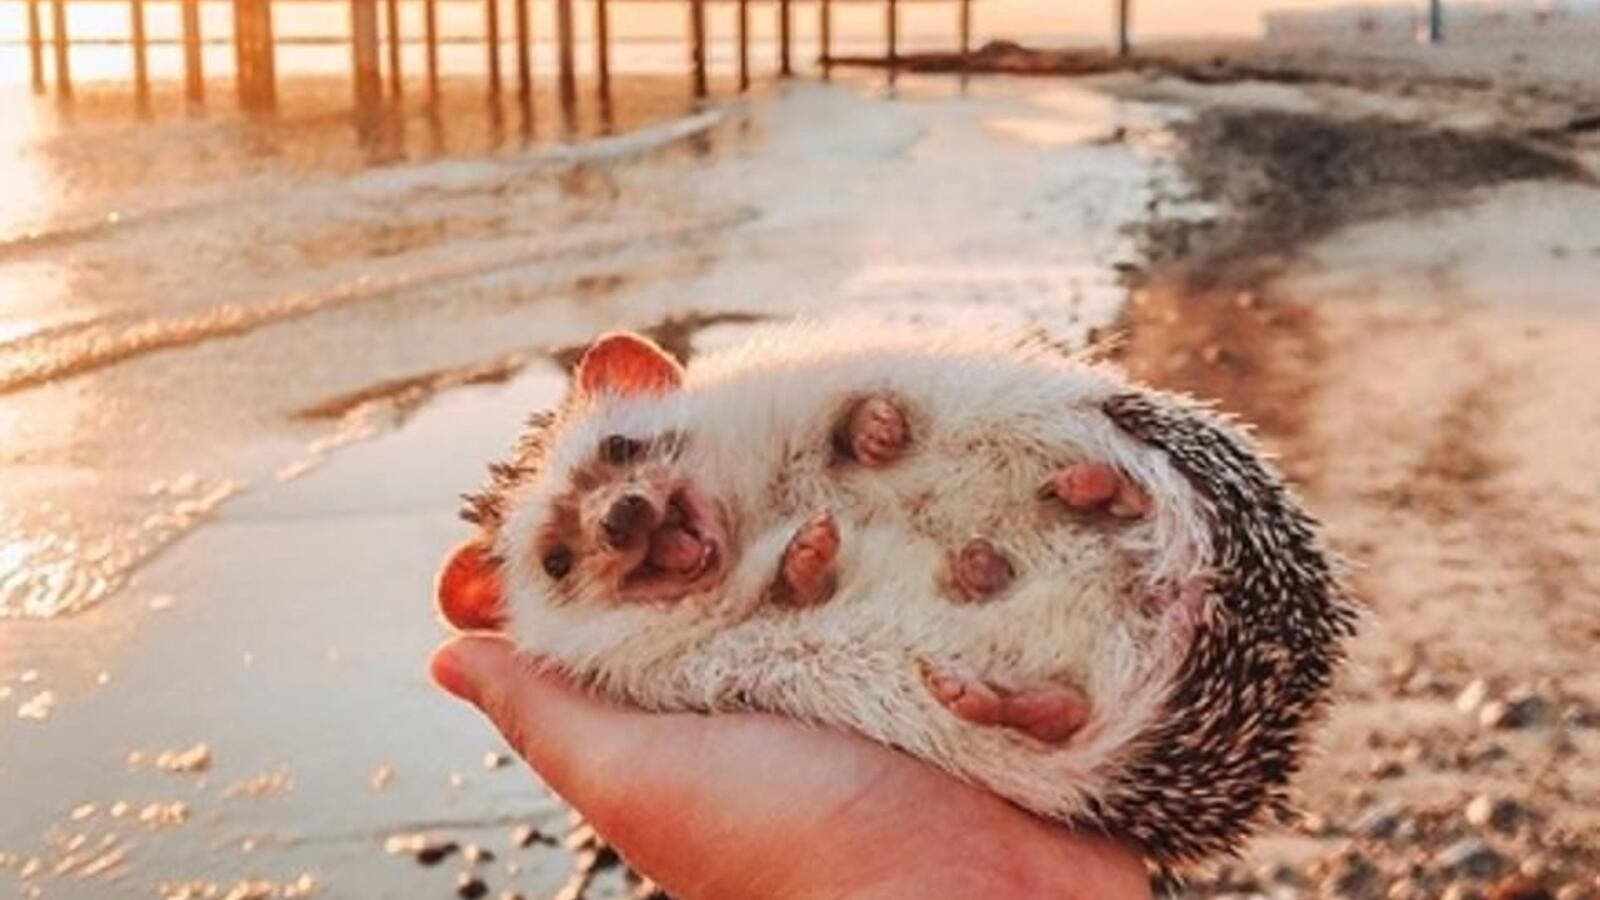 Herbee the happy hedgehog was last month pictured giving the world a smile as she lay on the palm of Talitha's pal in South Tyrol, Italy. (Mr Pokee/ Instagram)